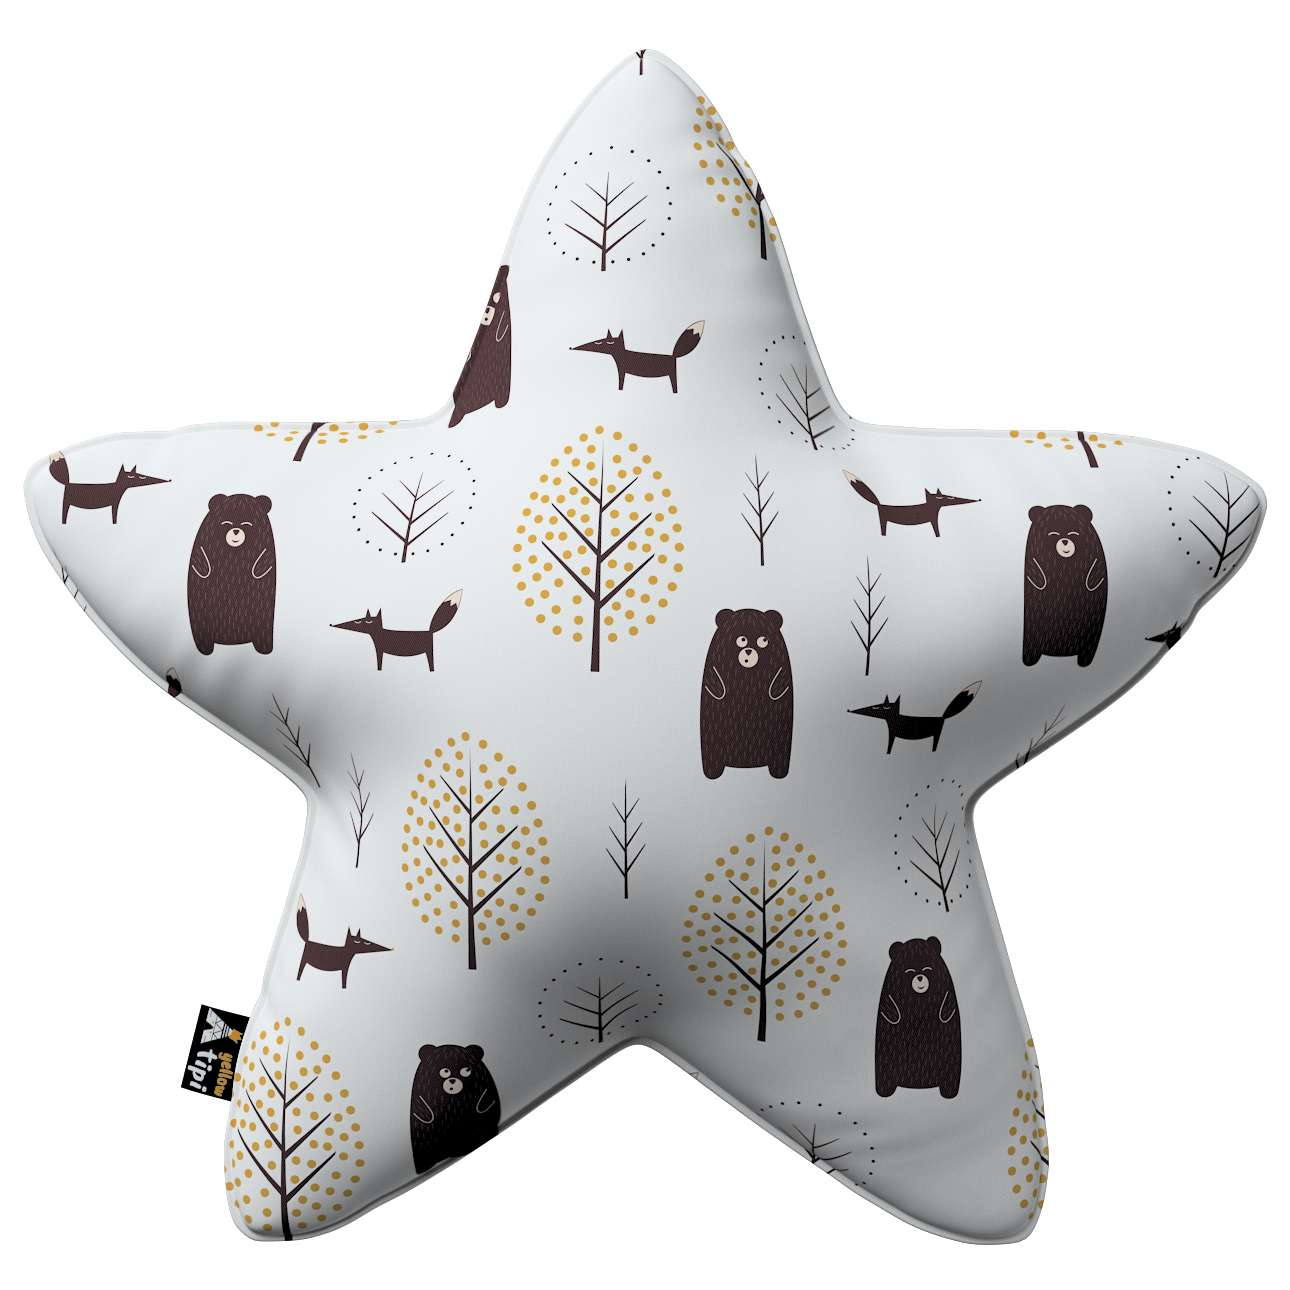 Kissen Lucky Star von der Kollektion Magic Collection, Stoff: 500-19